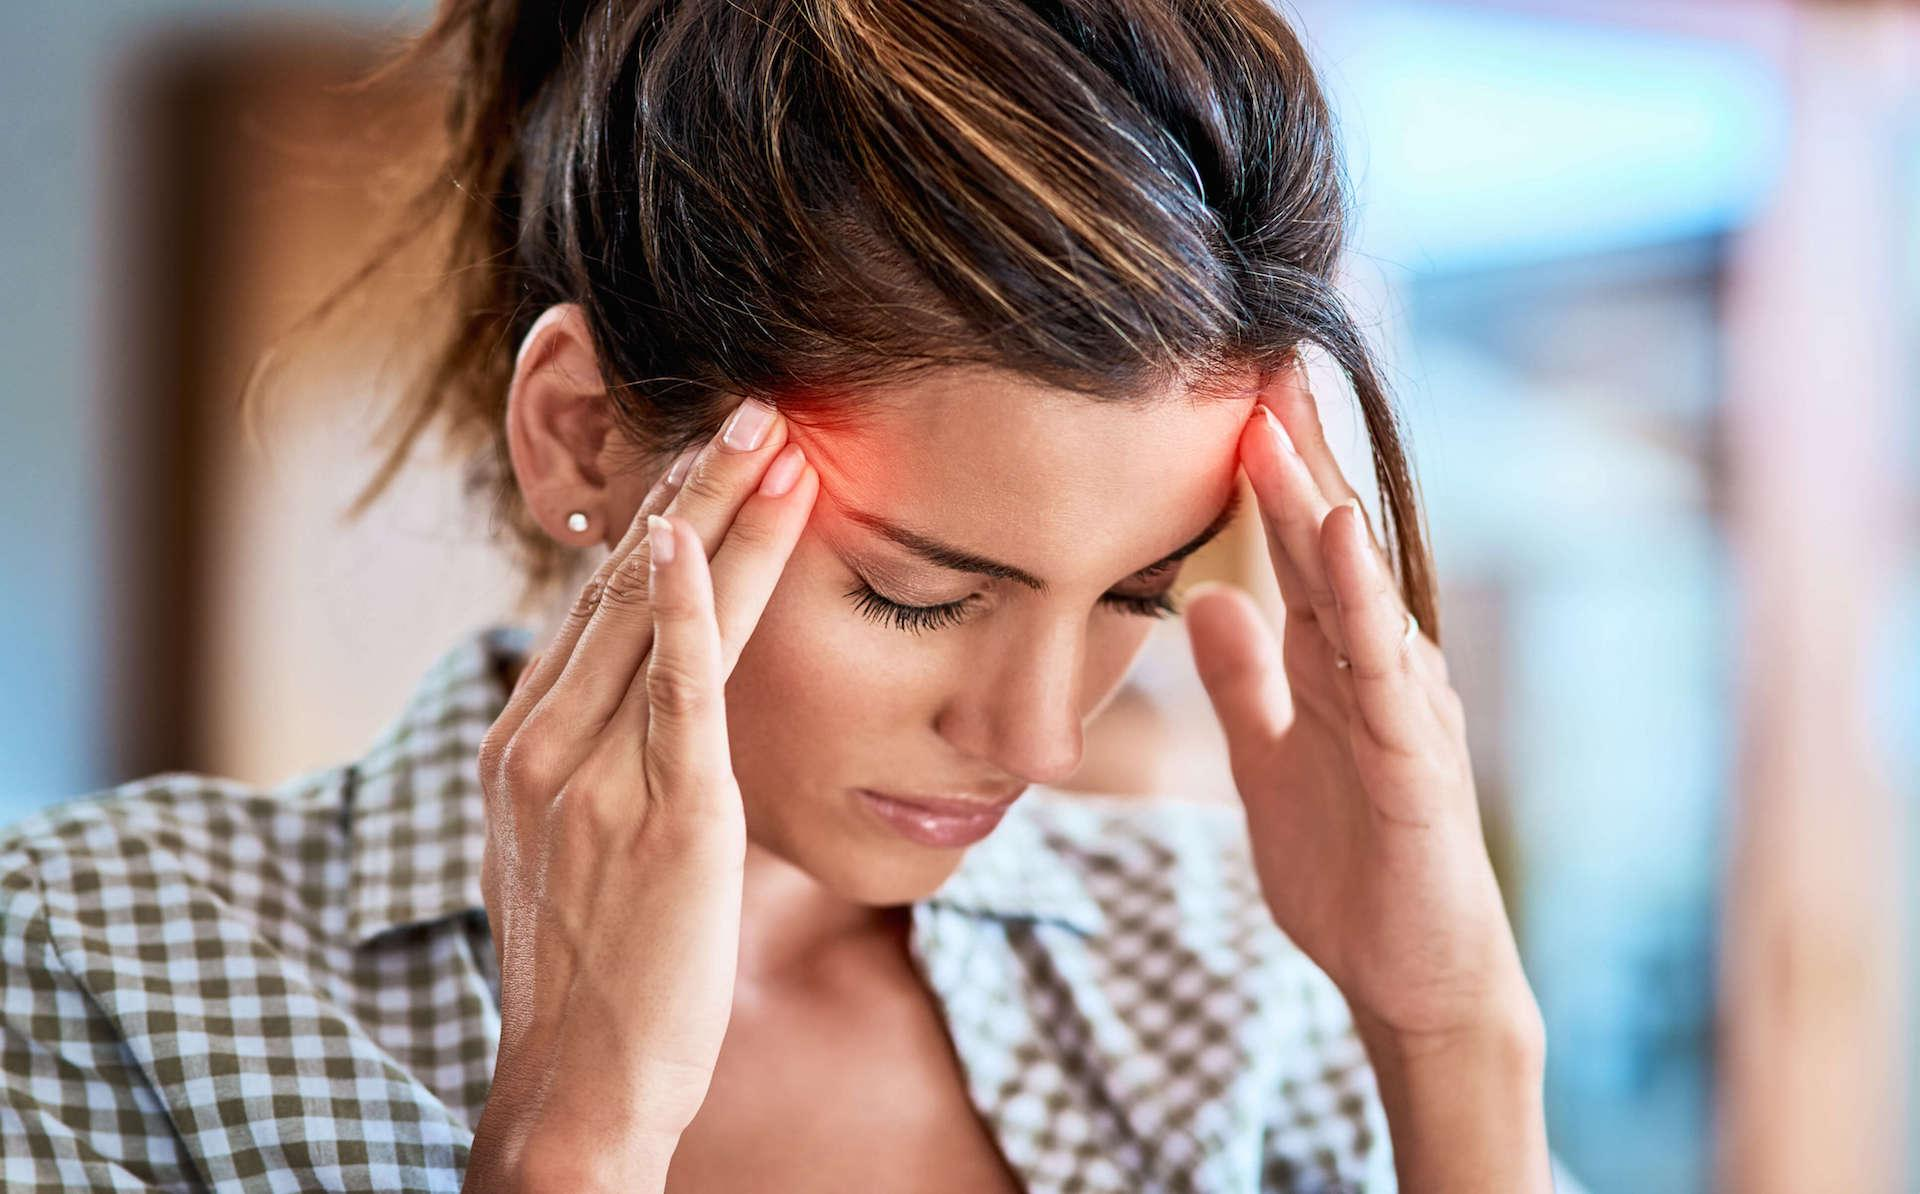 car accident attorney Miami - woman headache